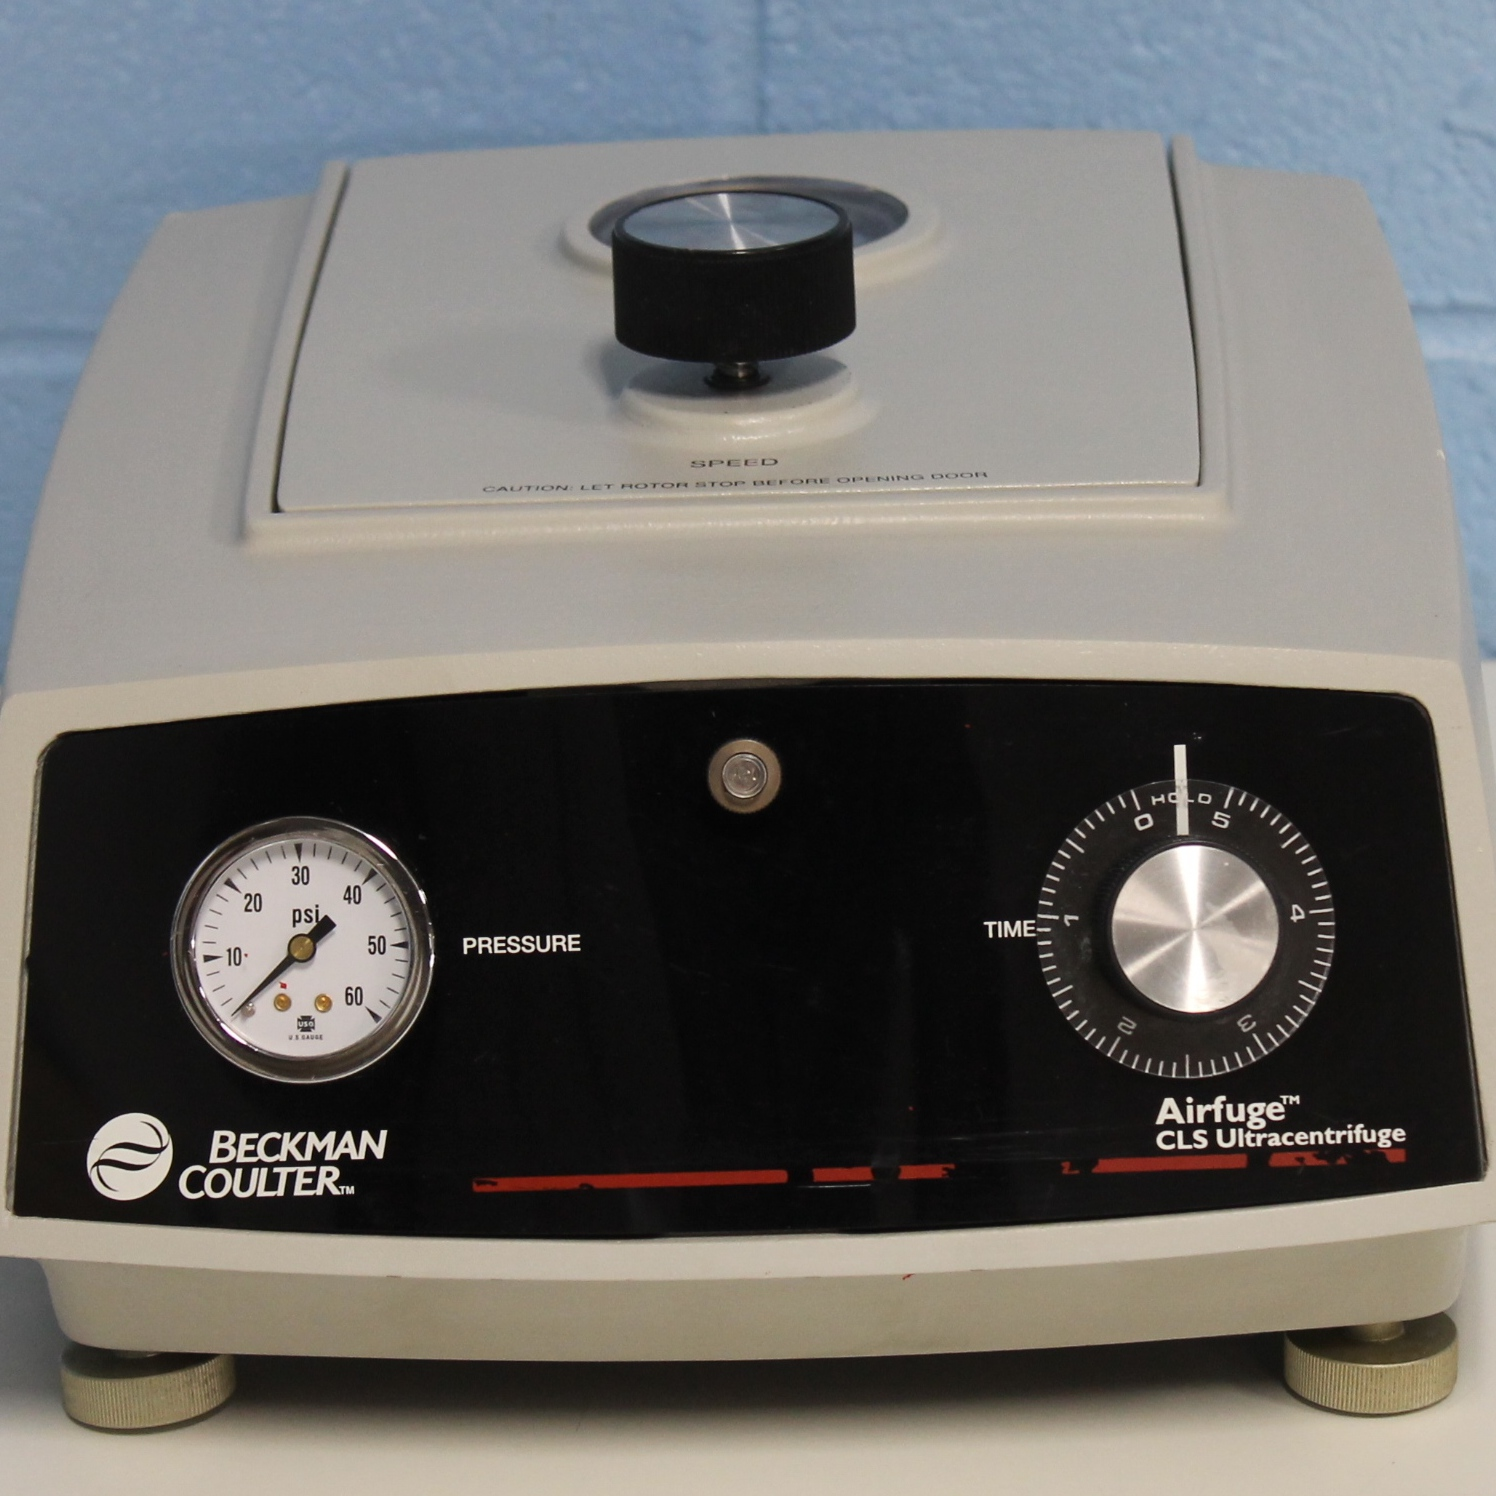 Beckman Airfuge CLS Ultracentrifuge CAT No. 362781 Image